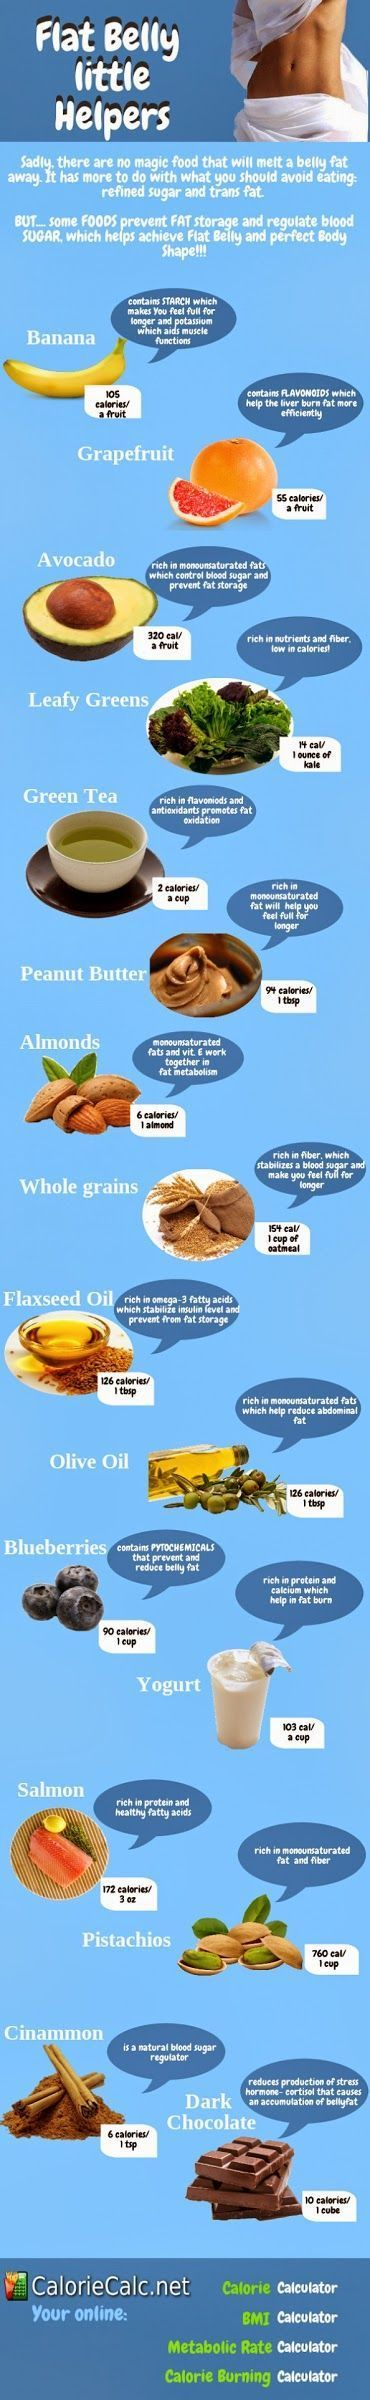 Fantastic infographic that gives you the best 15 foods that help you to lose belly fat! Healthy weight loss! http://upcominghealth.com/best-foods-for-losing-belly-fat/